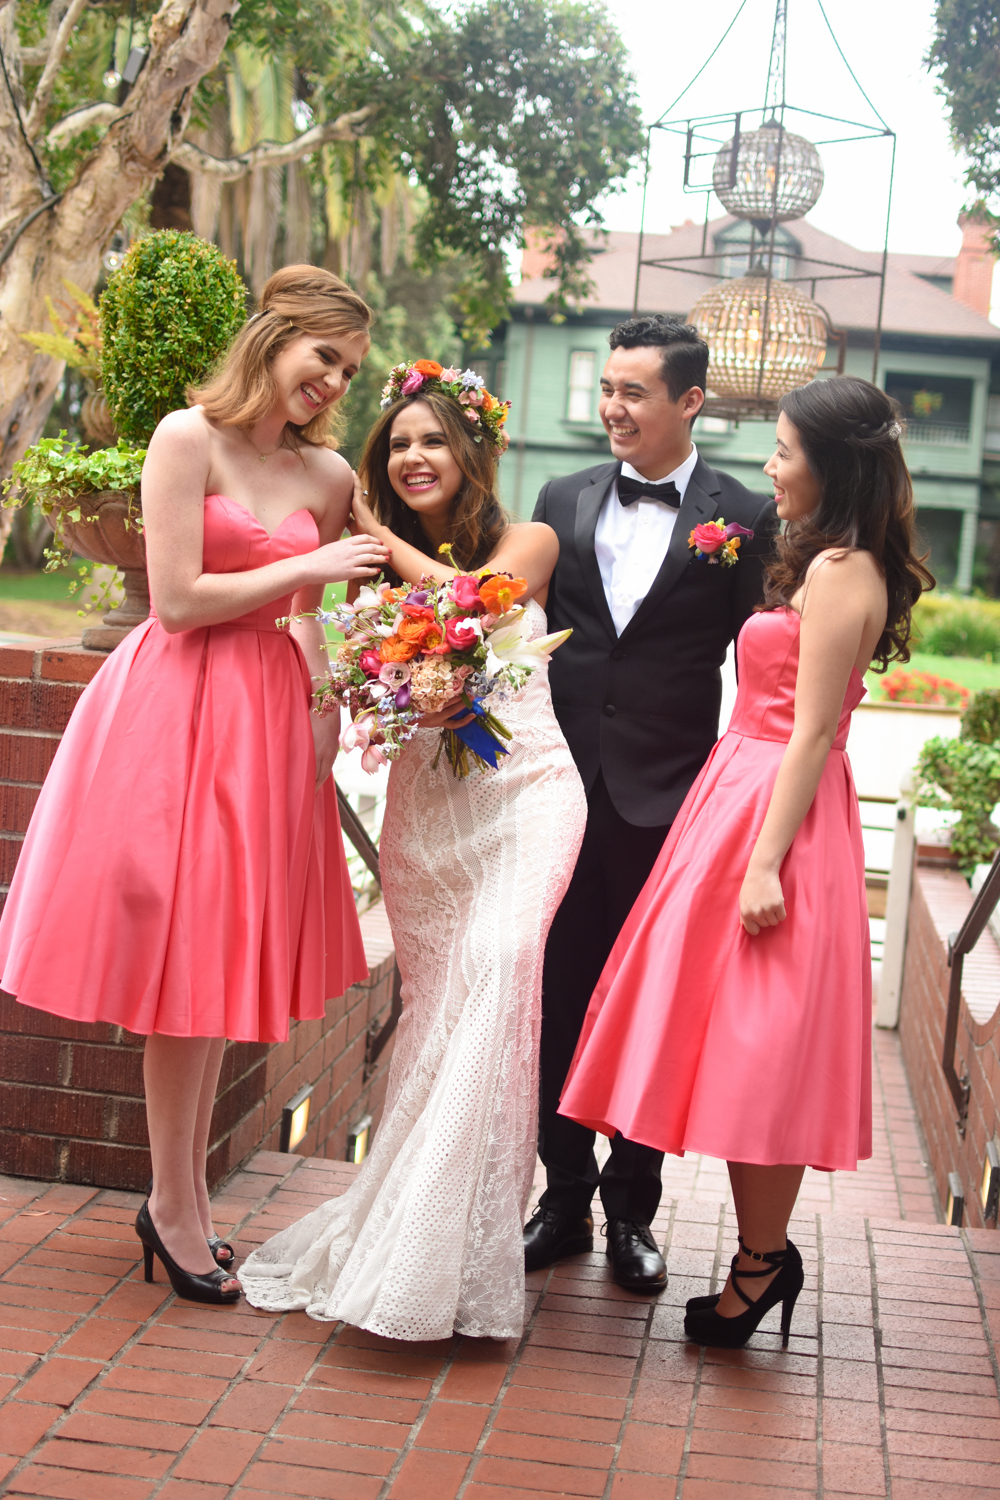 Colorful Hot Pink Bridal Party in Vintage Dresses